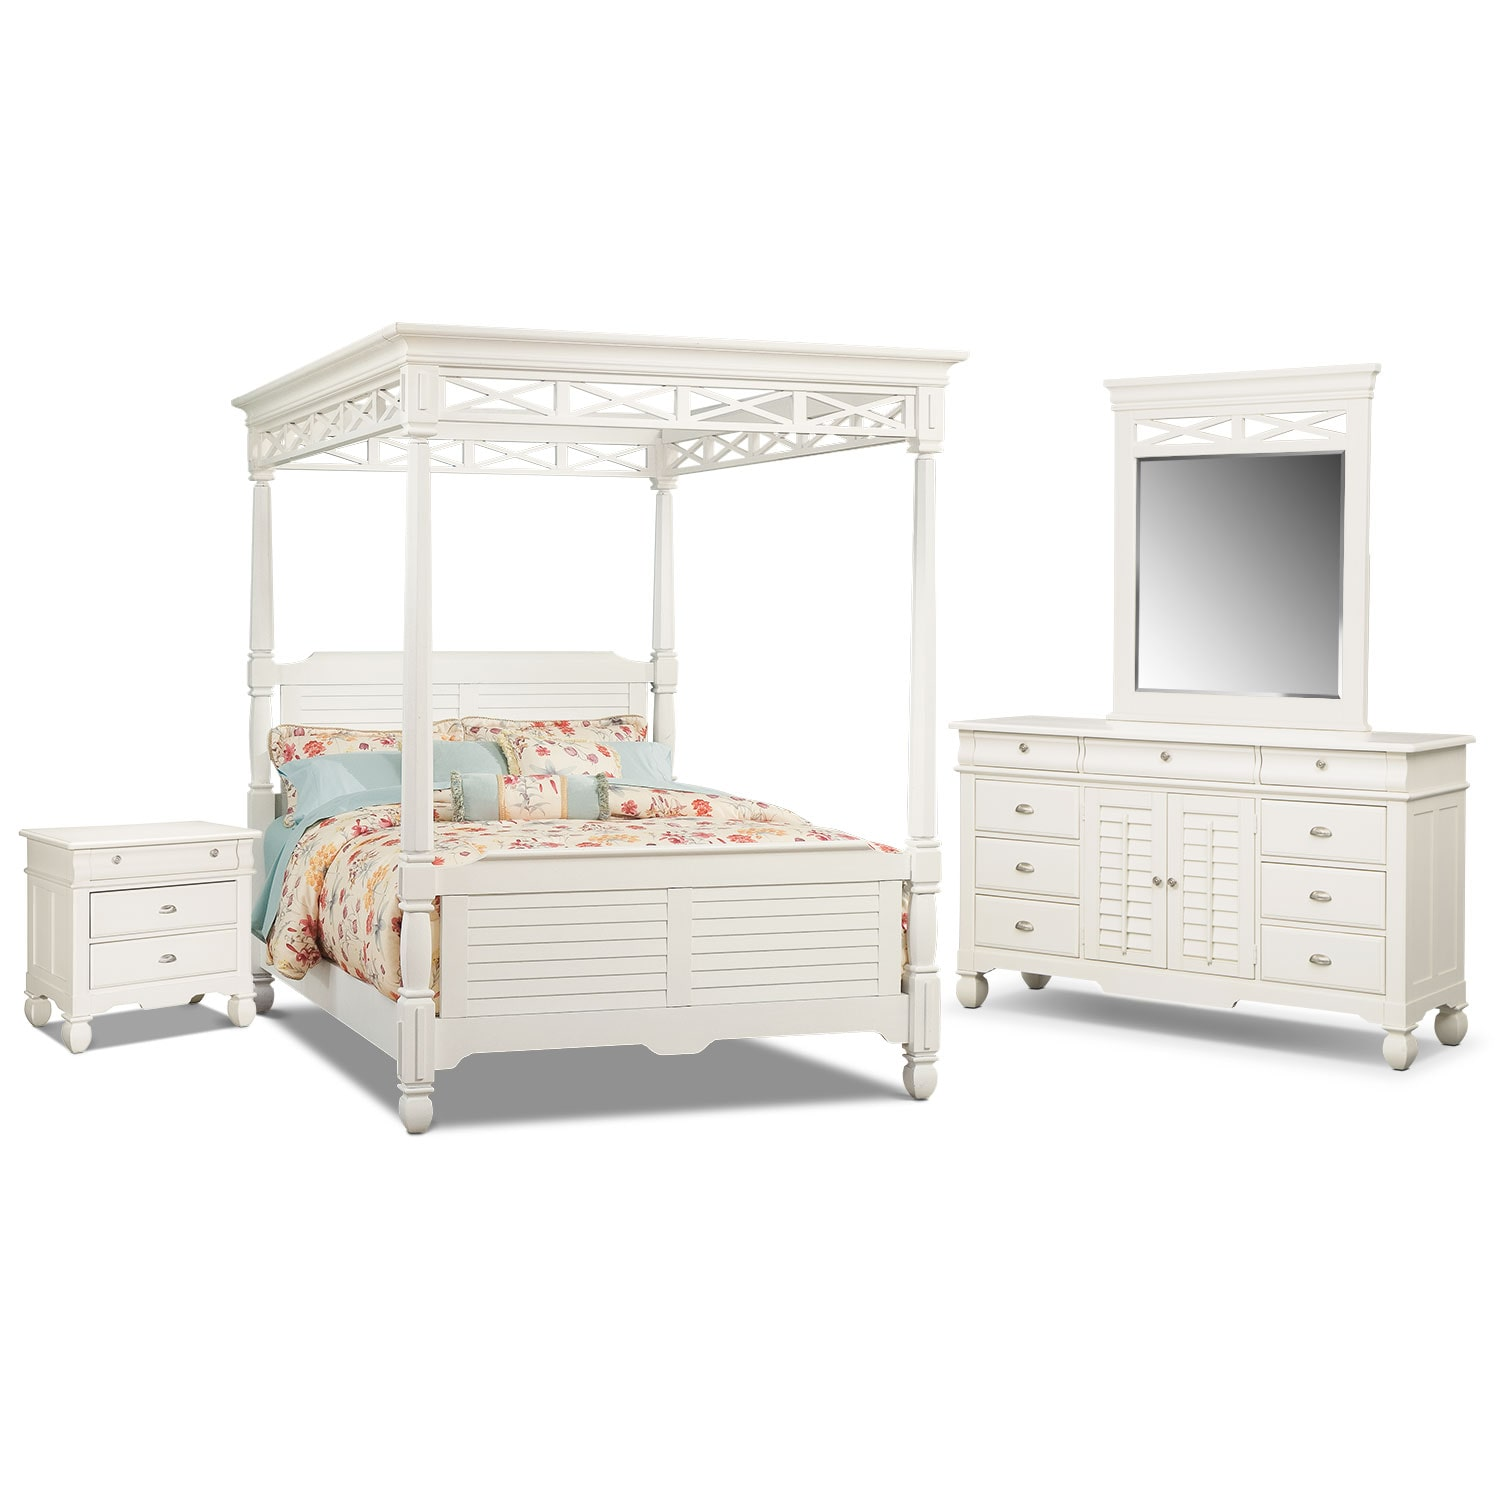 Bedroom Furniture - Plantation Cove Canopy 6-Piece Bedroom Set w/Drawer Nightstand - White